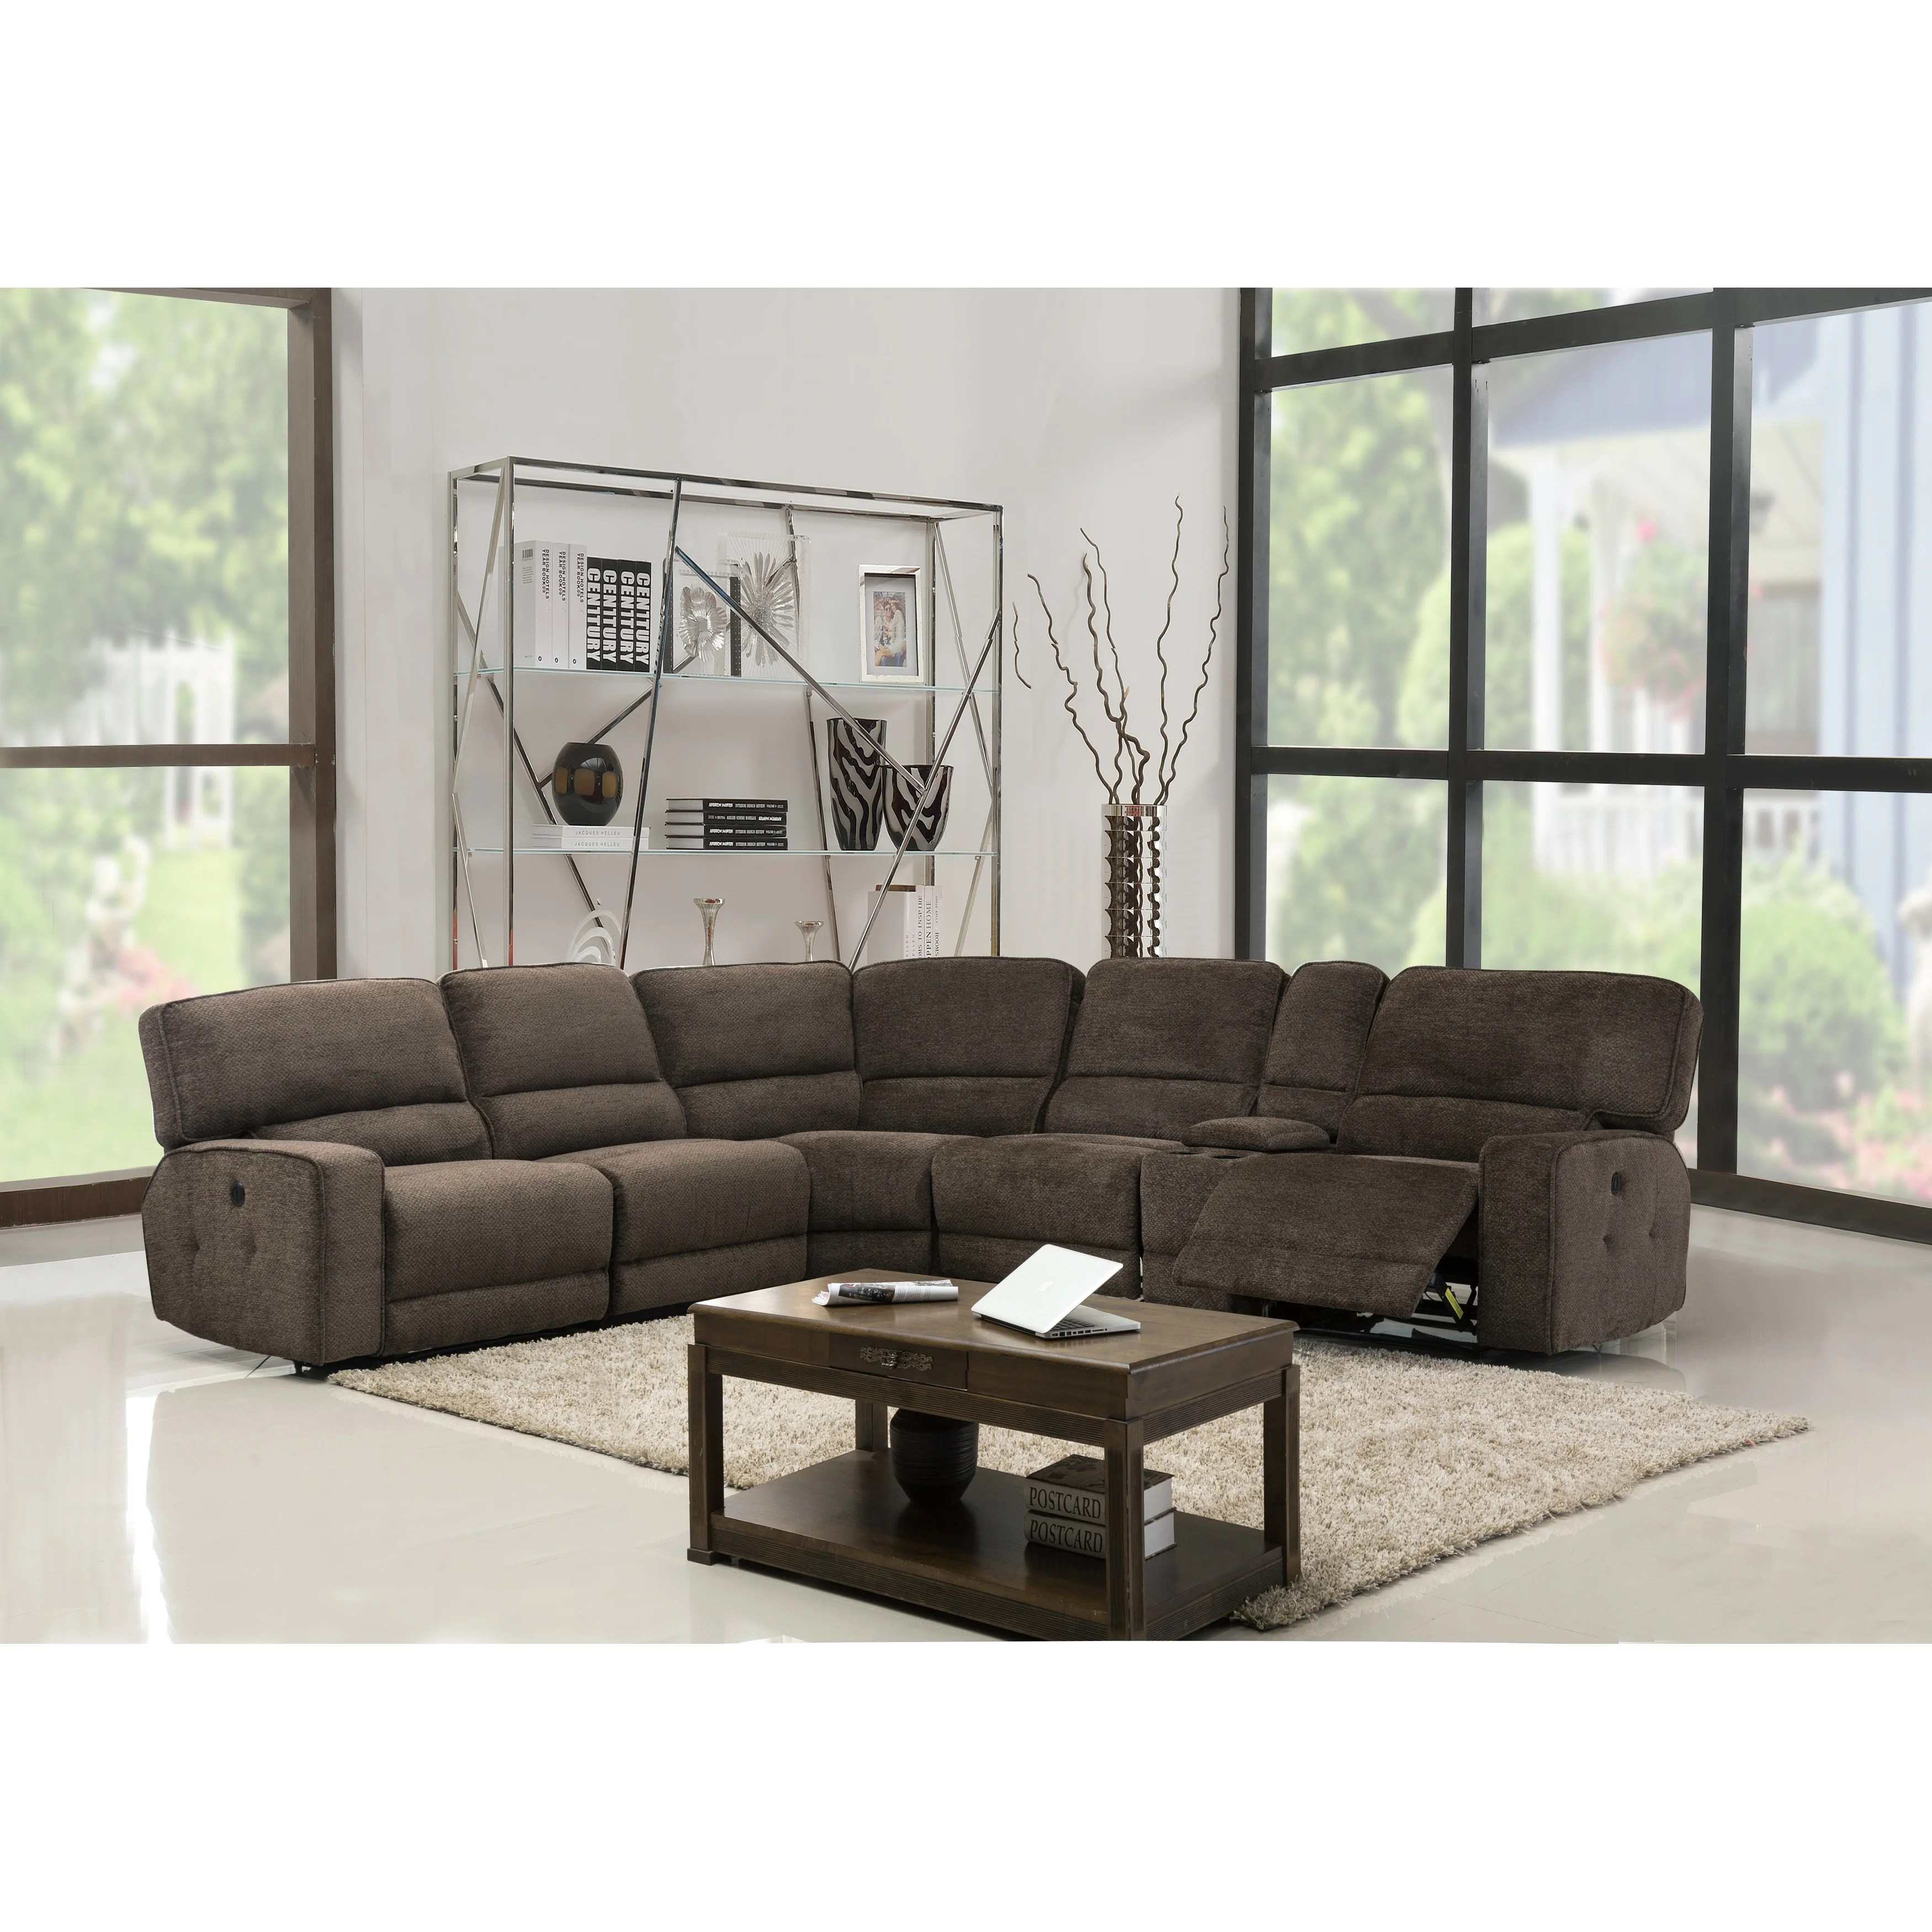 Shop For Gu Industries Chenille Fabric Upholstered Reclining Sectional Sofa Get Free Delivery On Everything At Overstock Your Online Furniture Shop Get 5 In Rewards With Club O 18272661